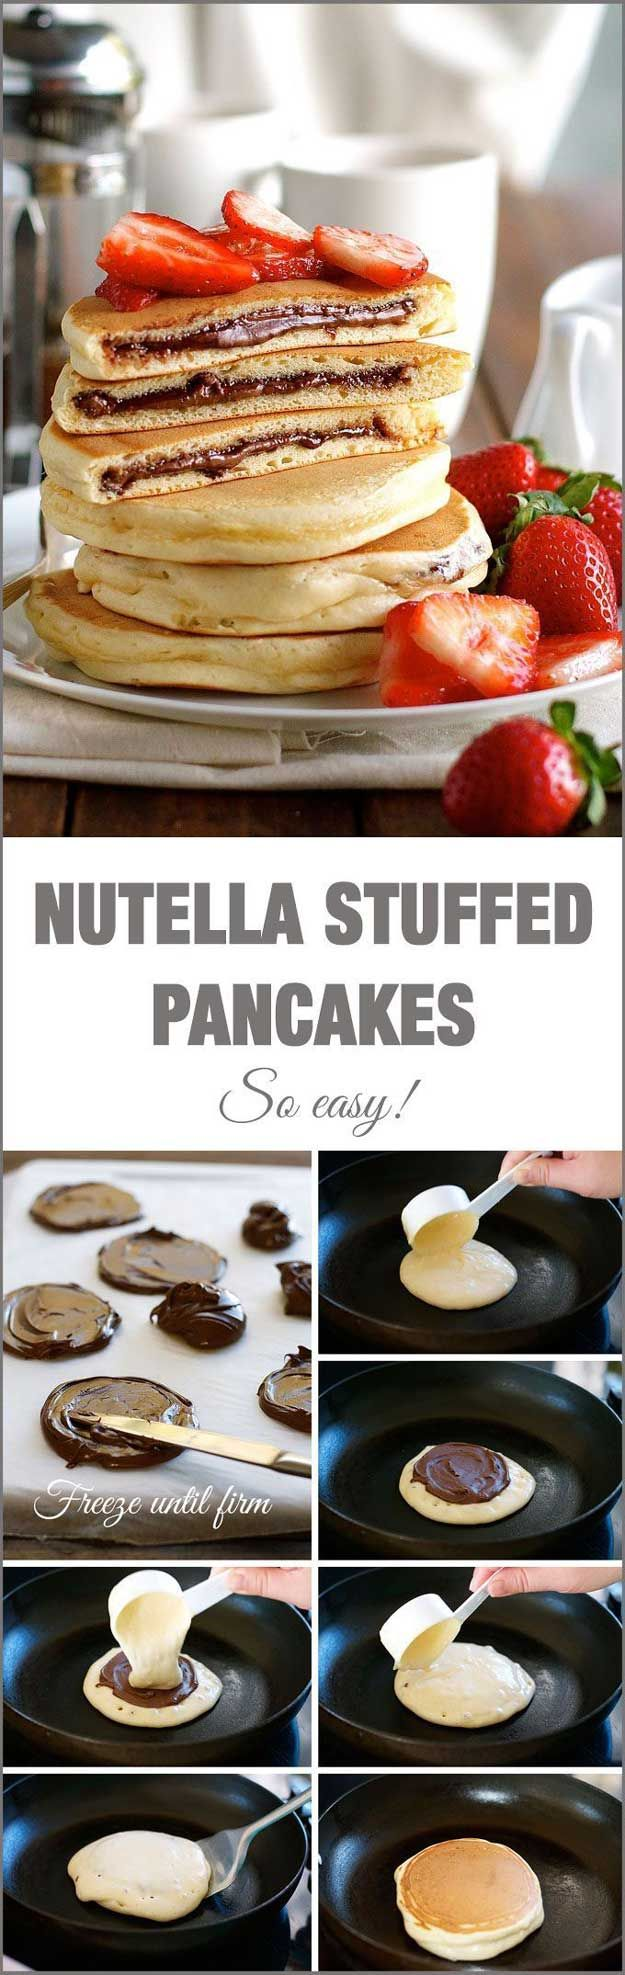 The Best Pancake Recipes Ever! | How To Make Pancakes From Scratch - Best Breakfast Recipe by Pioneer Settler at http://pioneersettler.com/best-pancake-recipe-ever/